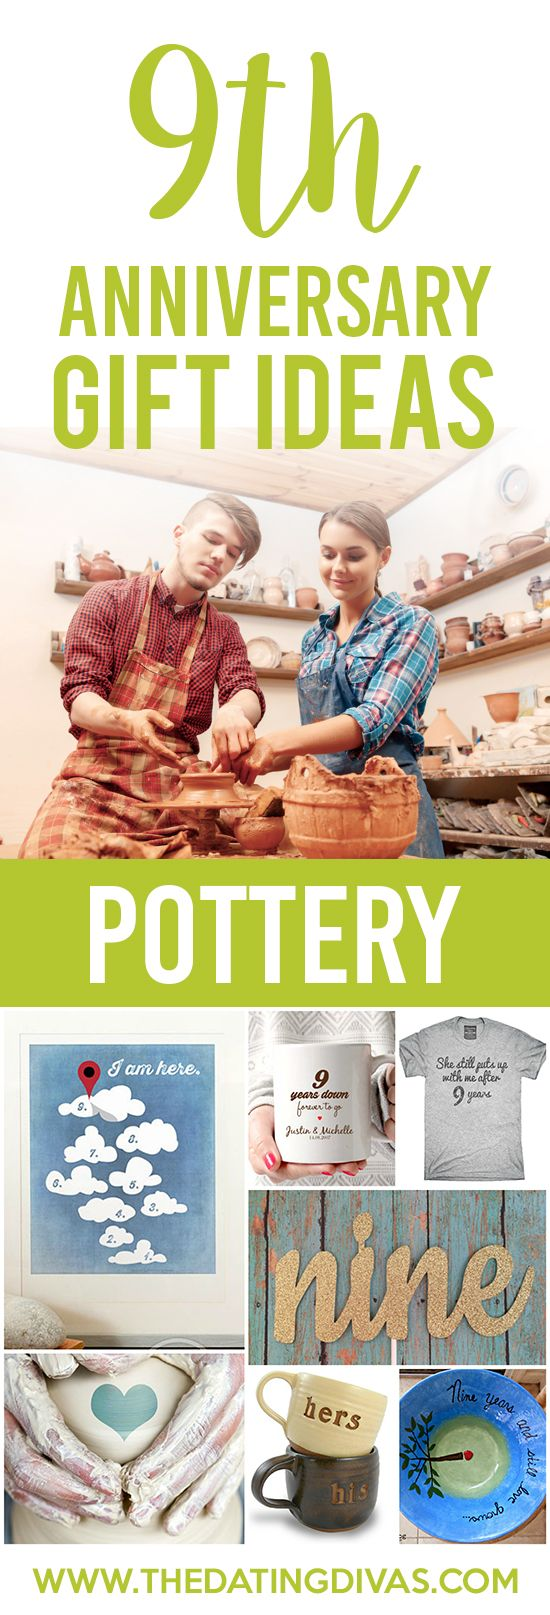 9th Anniversary Gift Ideas for your Pottery Anniversary. Super cute ideas!